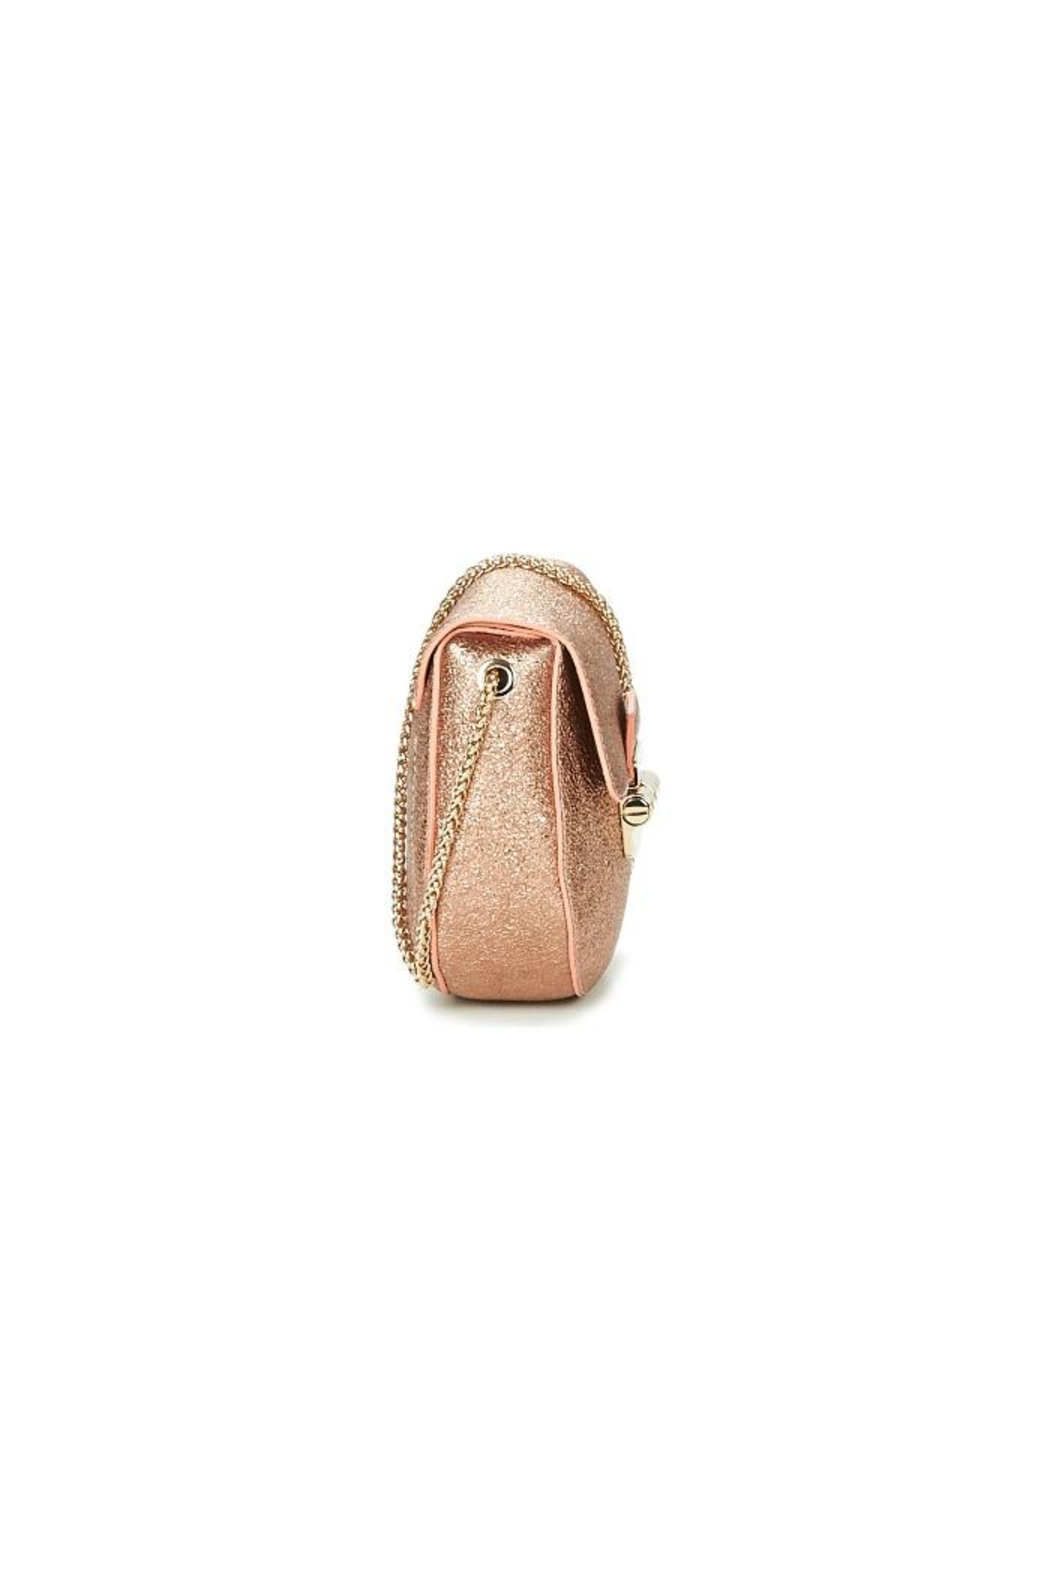 Furla Club Mini From Canada By Era Style Loft Shoptiques Brown Front Full Image